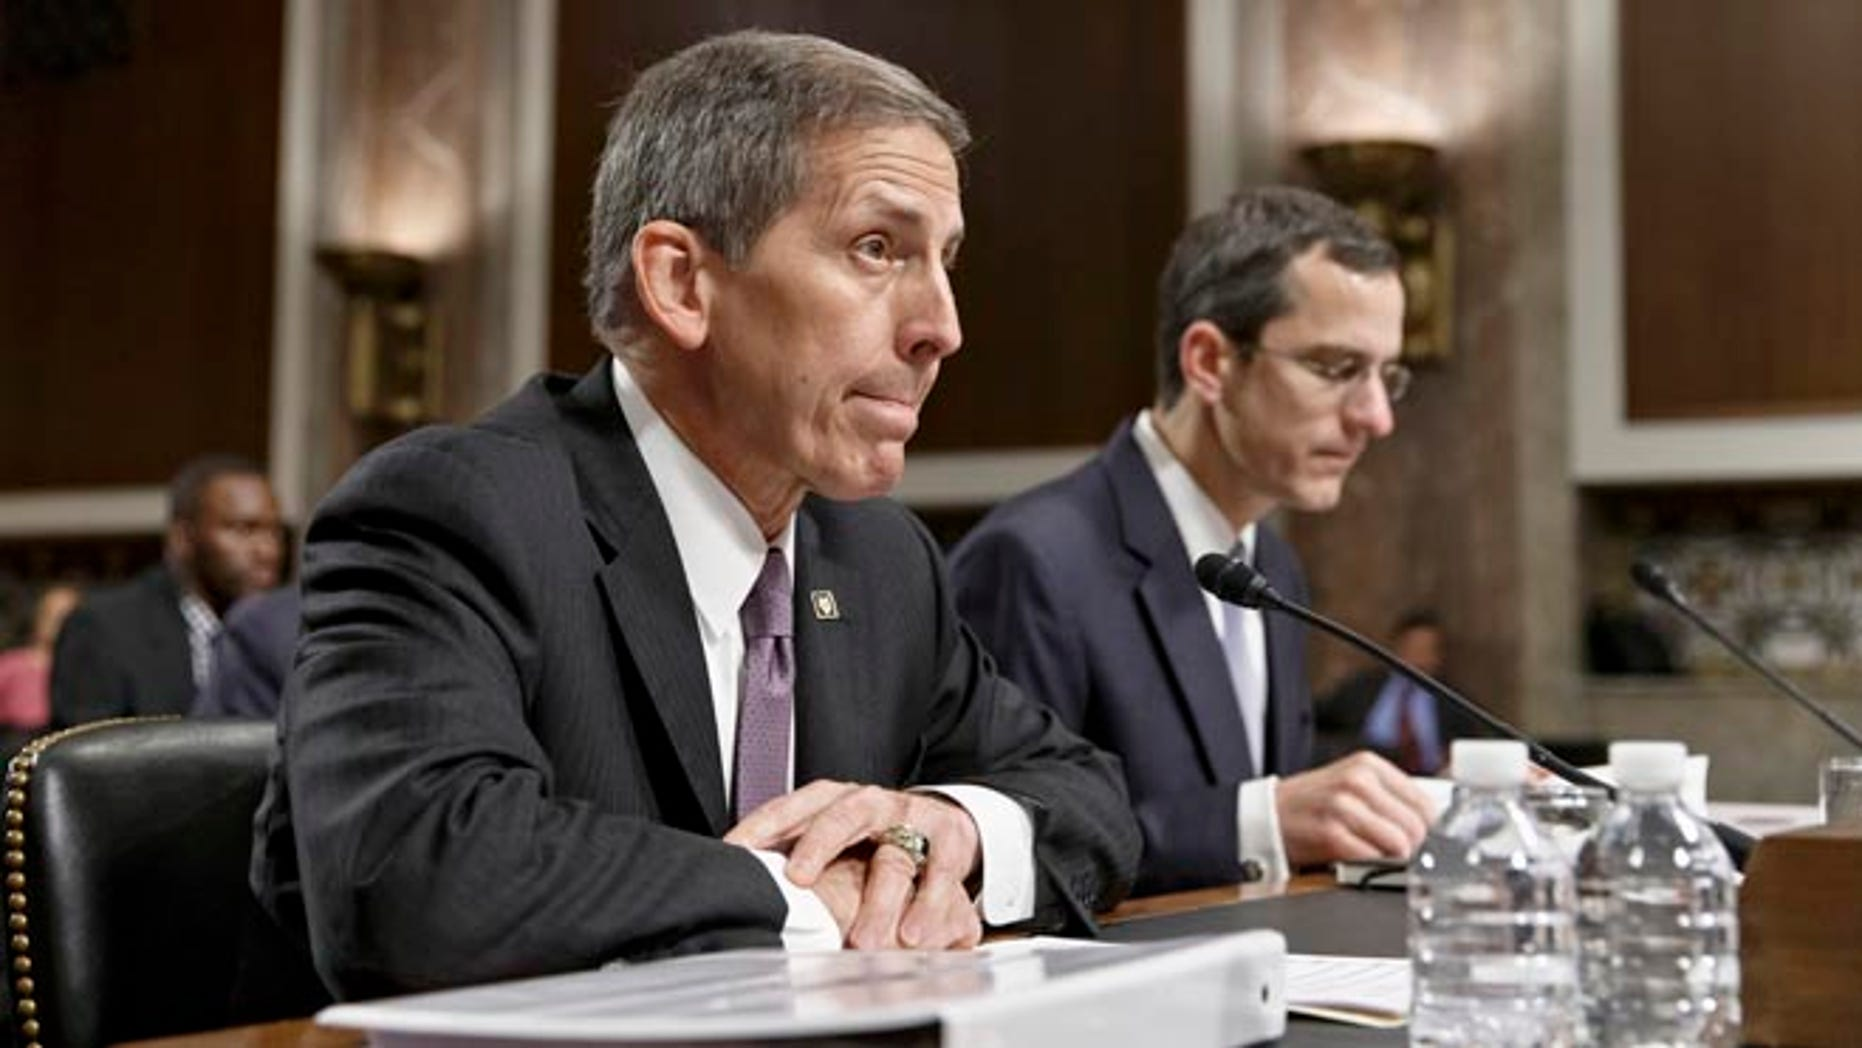 Veterans Affairs acting Secretary Sloan Gibson testifies on Capitol Hill in Washington, Wednesday, July 16, 2014, before the Senate Veterans' Affairs Committee hearing on the state of VA health care in the wake of revelations of neglect and delayed medical visits. He is accompanied by Assistant Deputy Undersecretary For Health For Administrative Operations Philip Matkowsky.